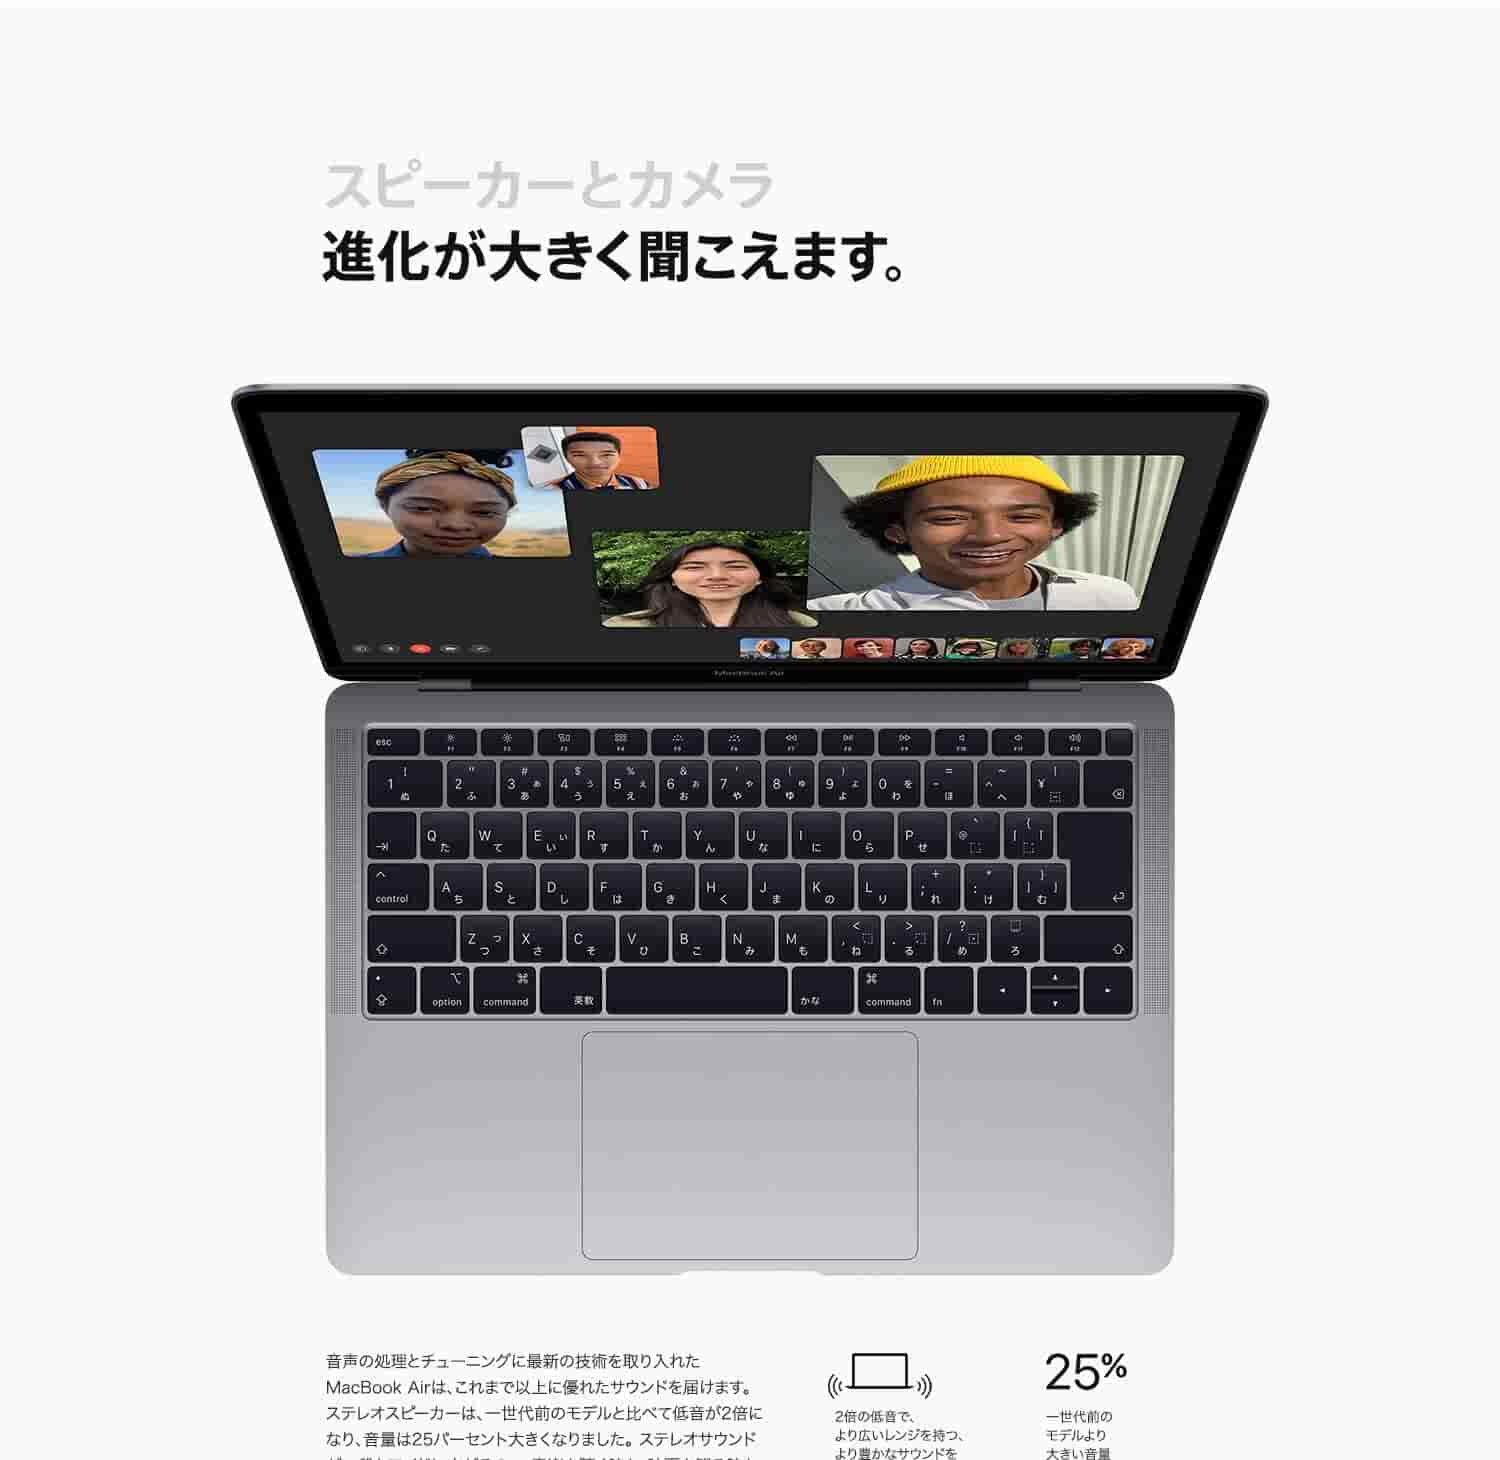 Macbook Air (Latest model)